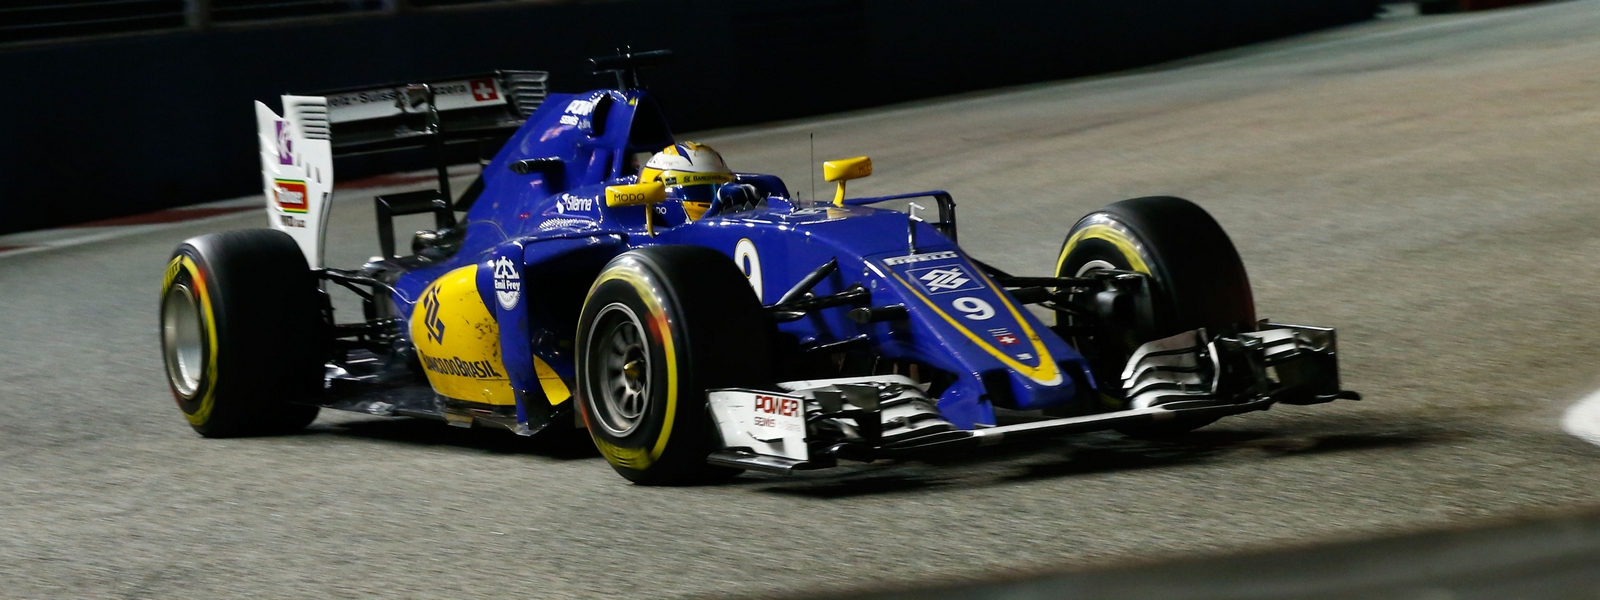 Motorsports: FIA Formula One World Championship 2016, Grand Prix of Singapore,  #9 Marcus Ericsson (SWE, Sauber F1 Team),  *** Local Caption *** +++ www.hoch-zwei.net +++ copyright: HOCH ZWEI +++